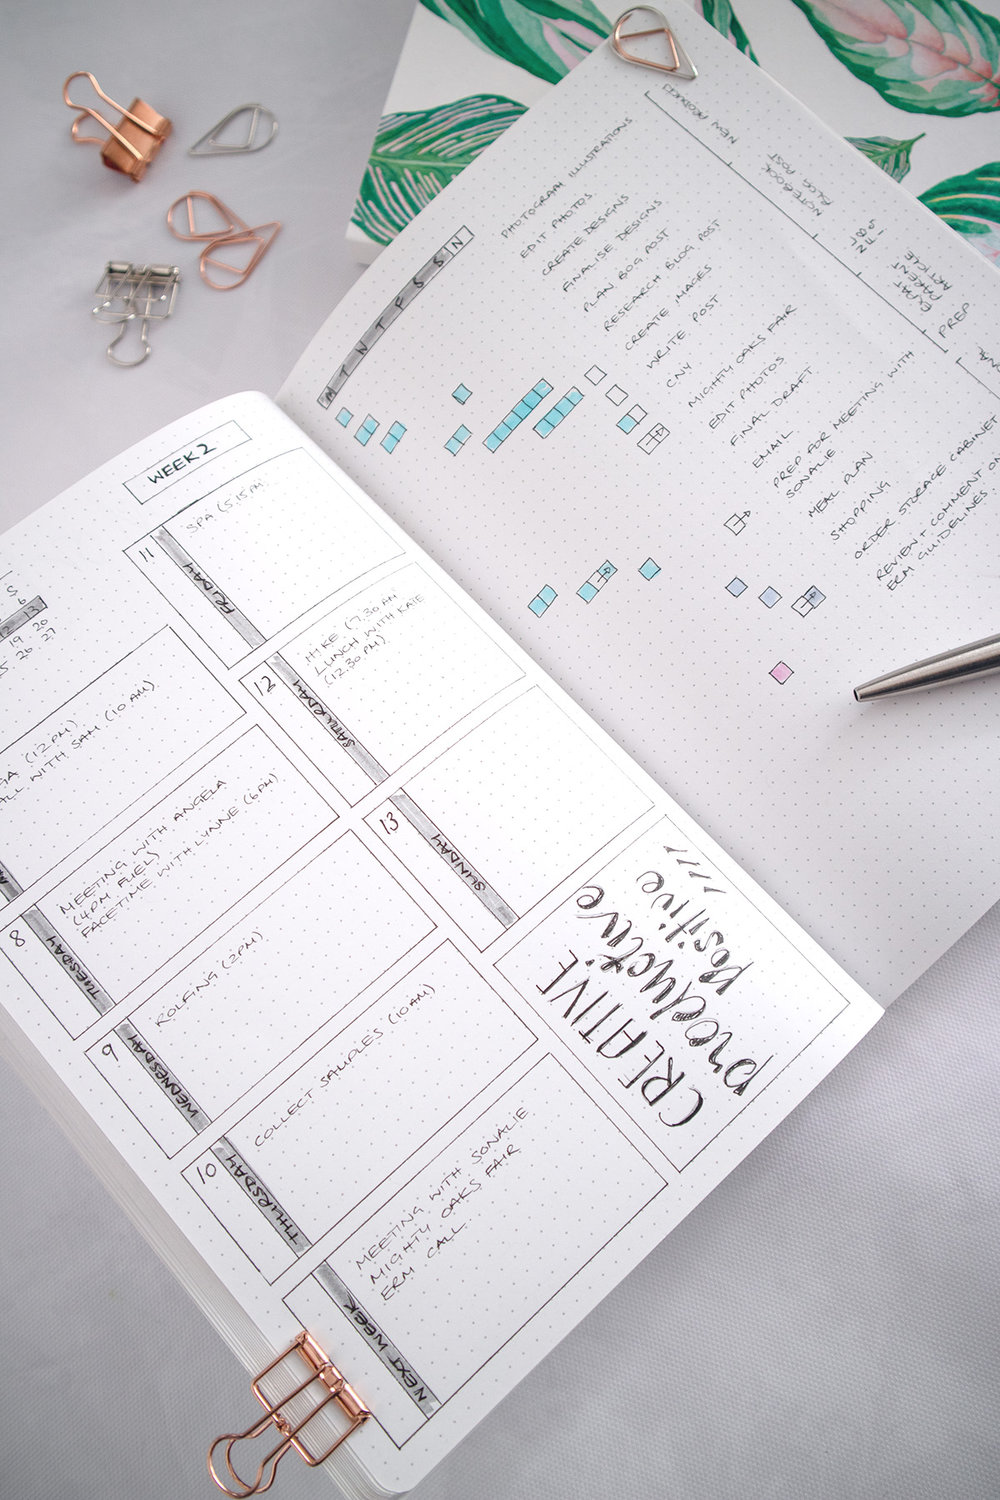 Paper-Roses | Notebooks | Weekly tasks and to-dos